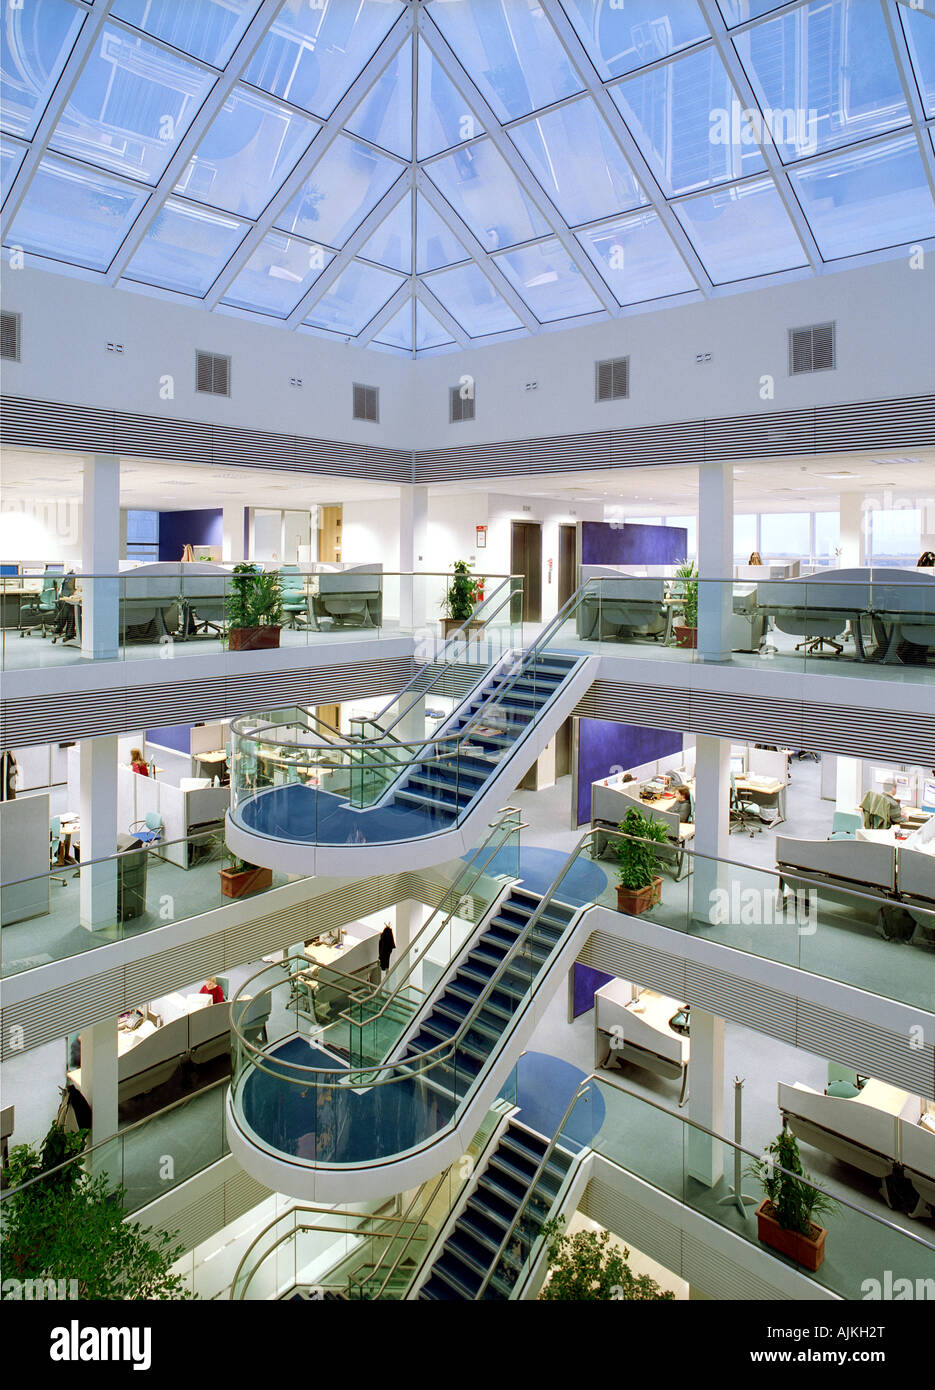 An Internal View Of An Atrium And Offices In A Modern